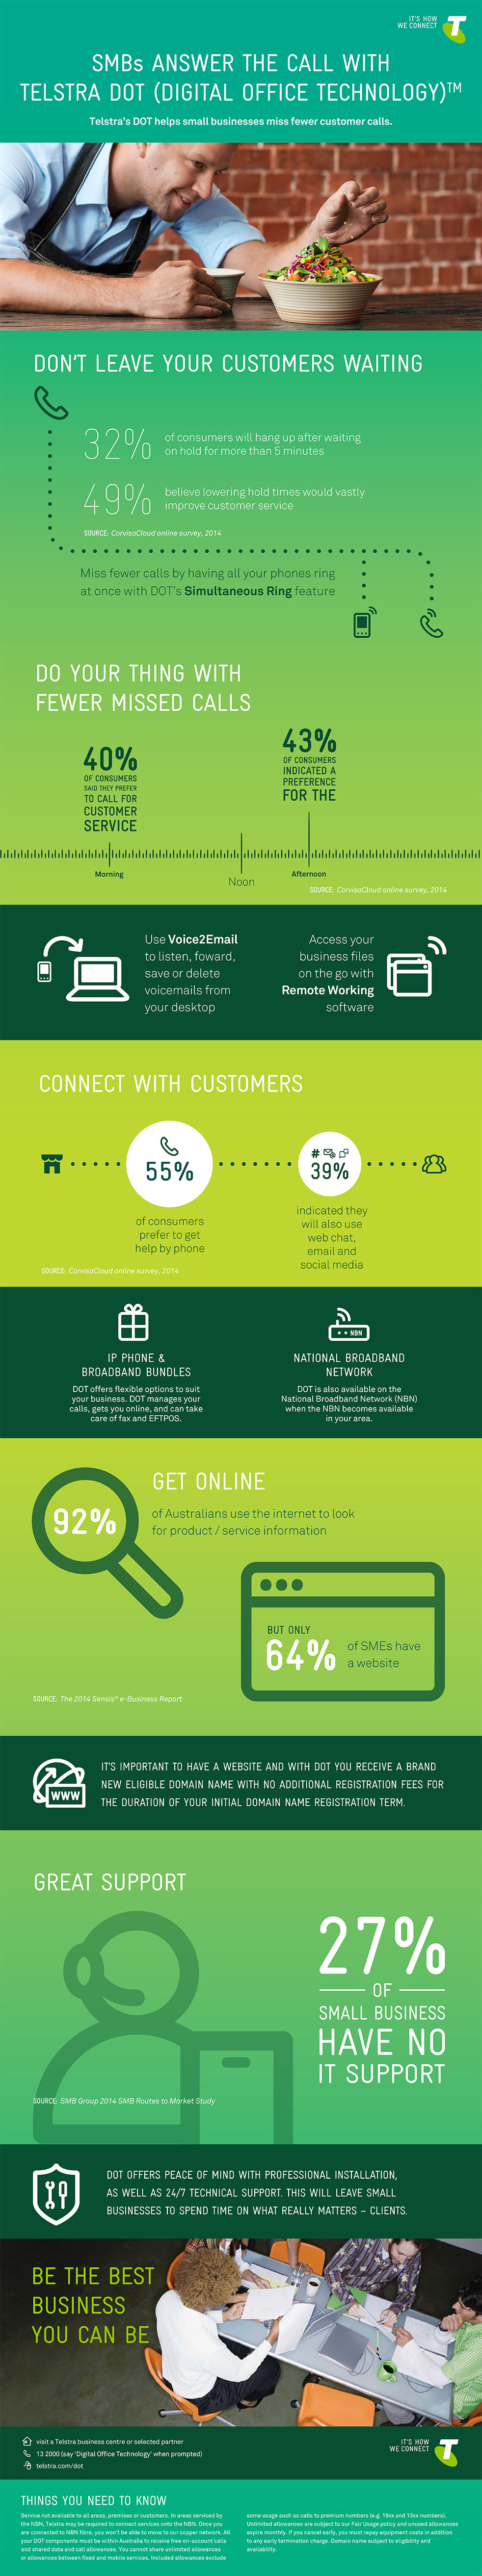 infographic on telstra dot (digital office technology)